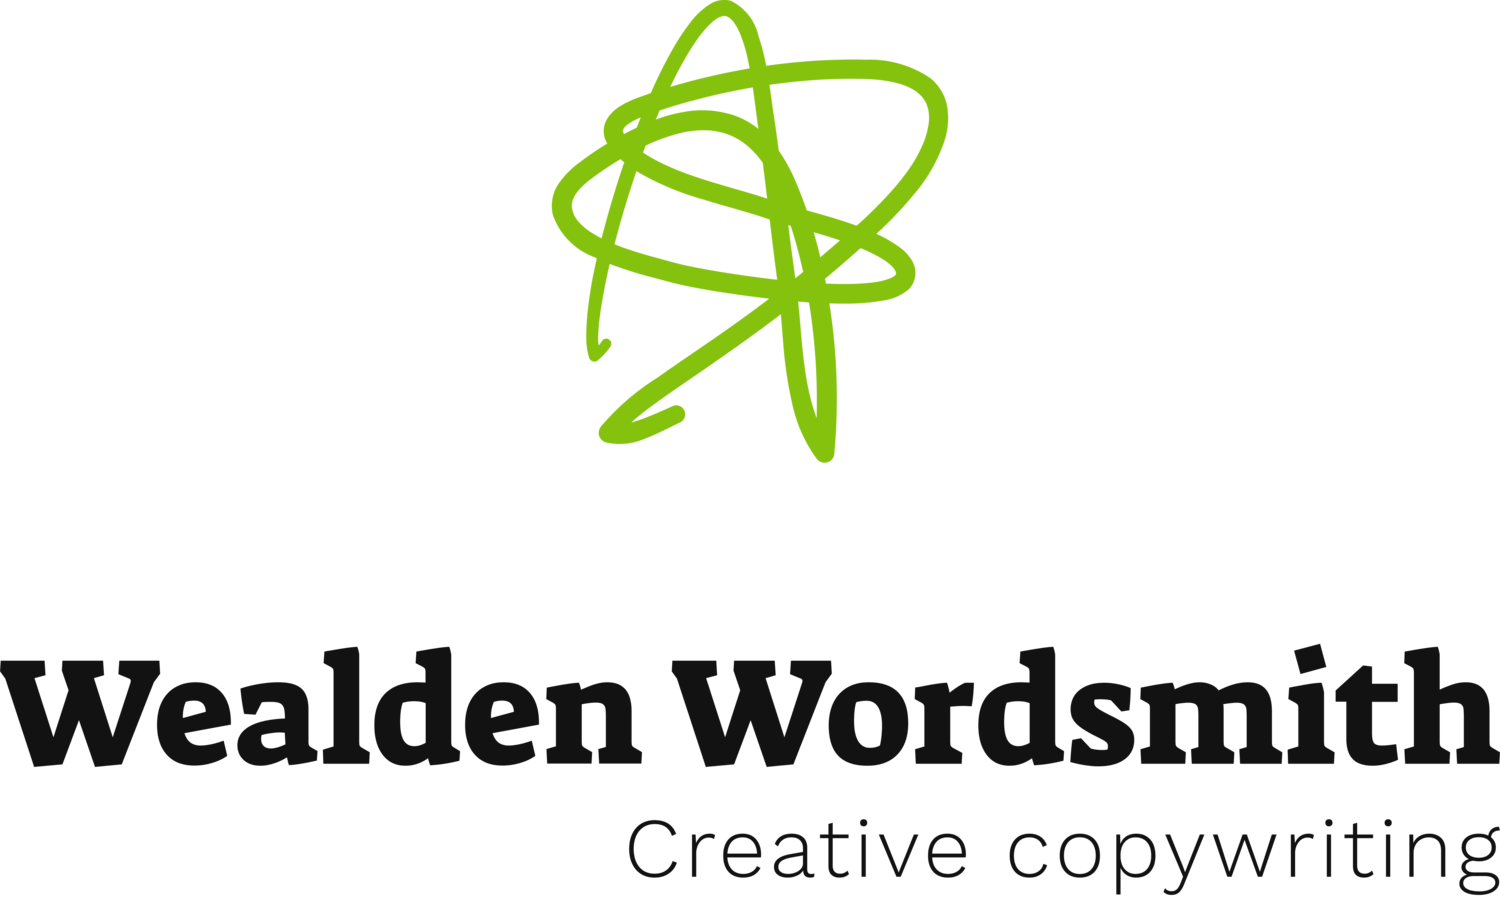 Wealden Wordsmith, creative copywriting that makes a difference.